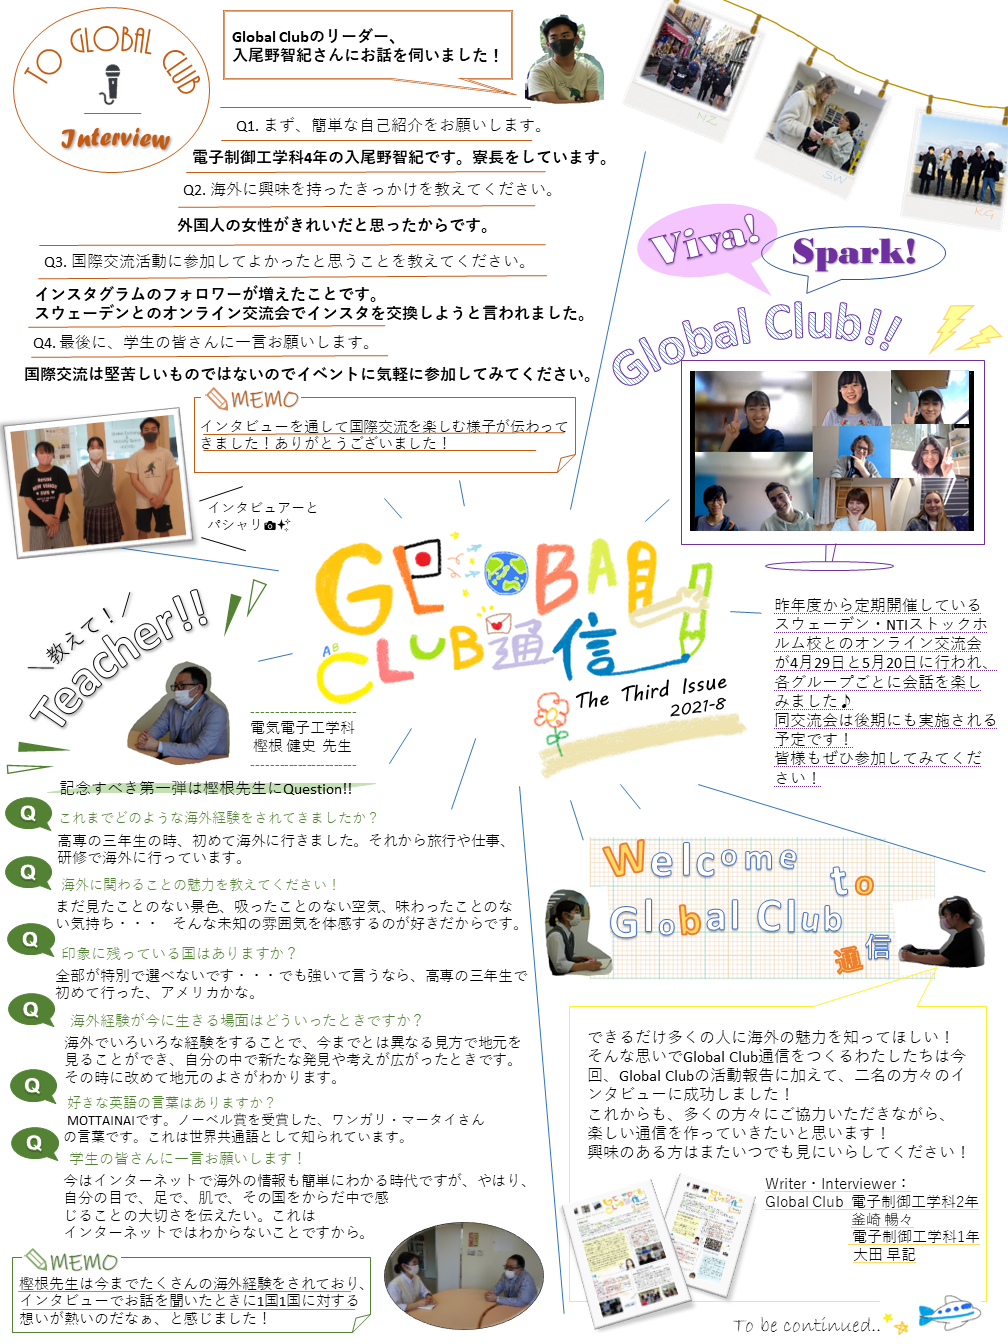 Global Club通信 ~The Third Issue~を発行しました!